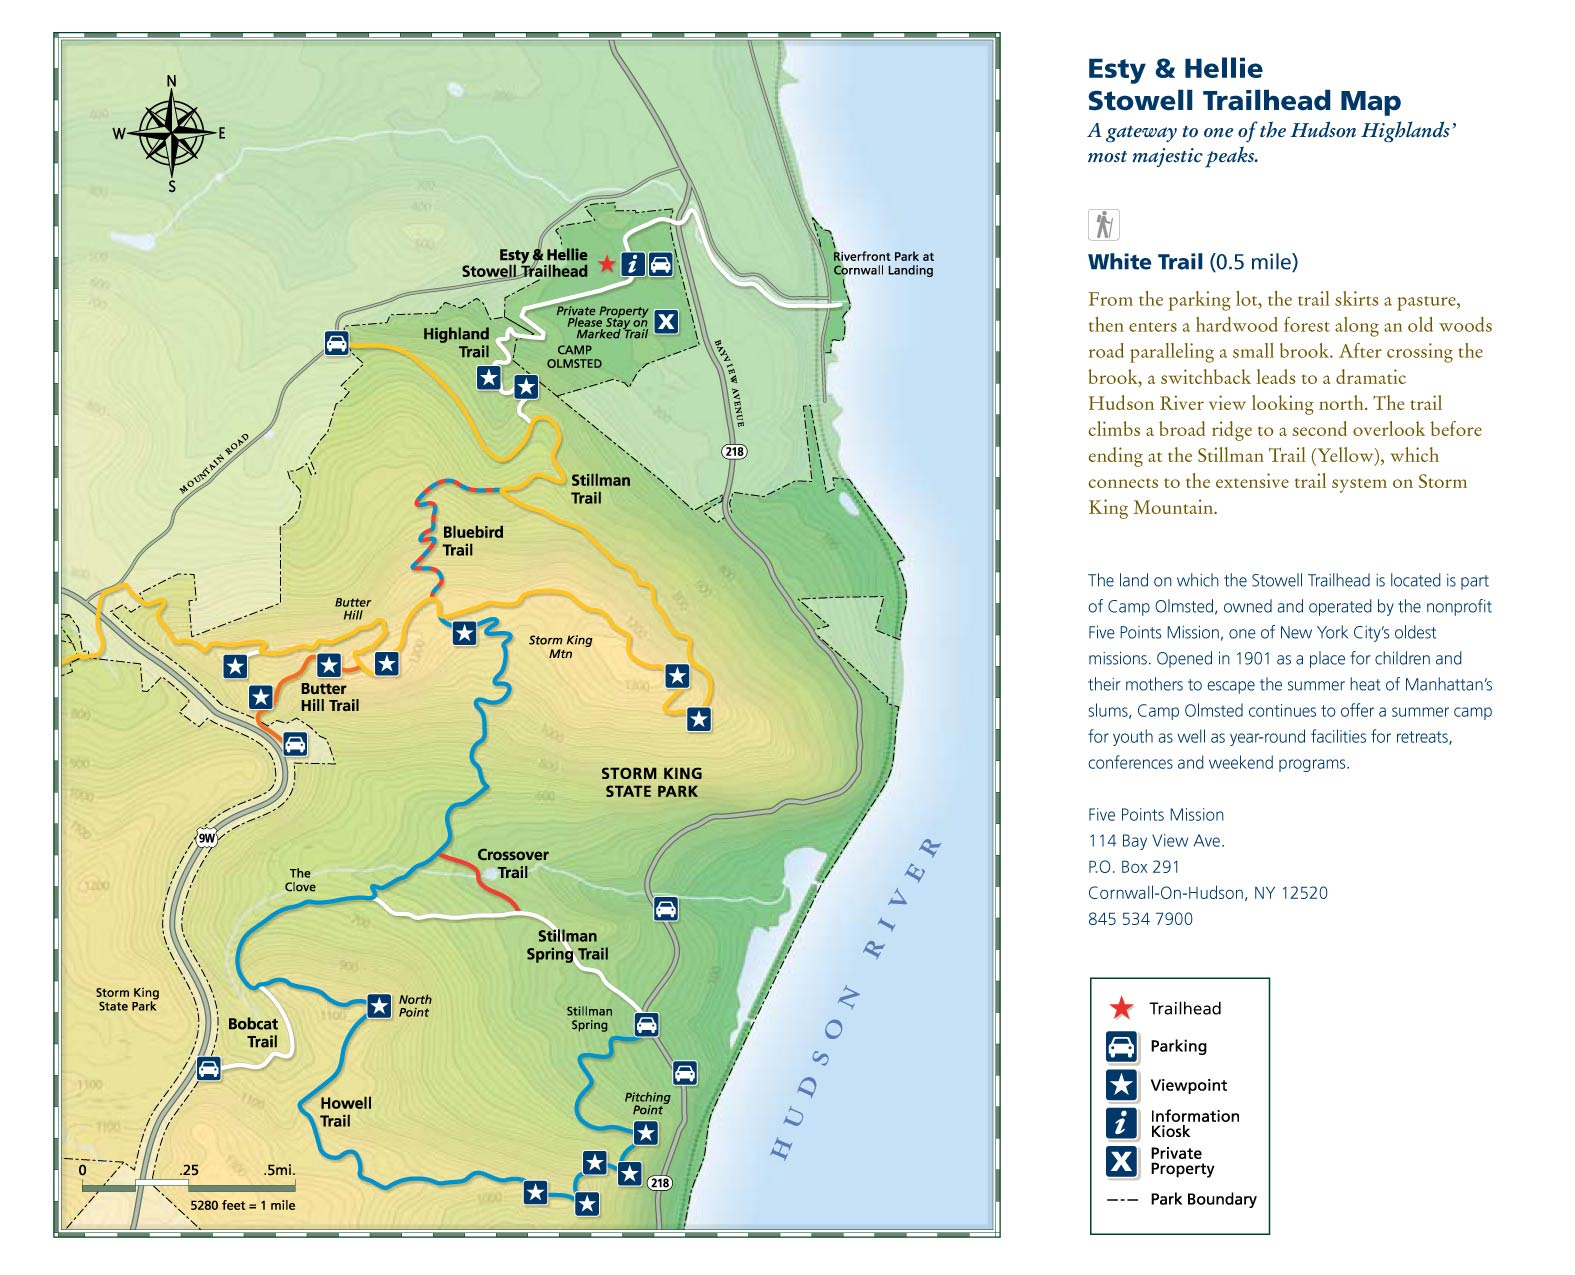 Storm King State Park Trail Map Walks In Westchester